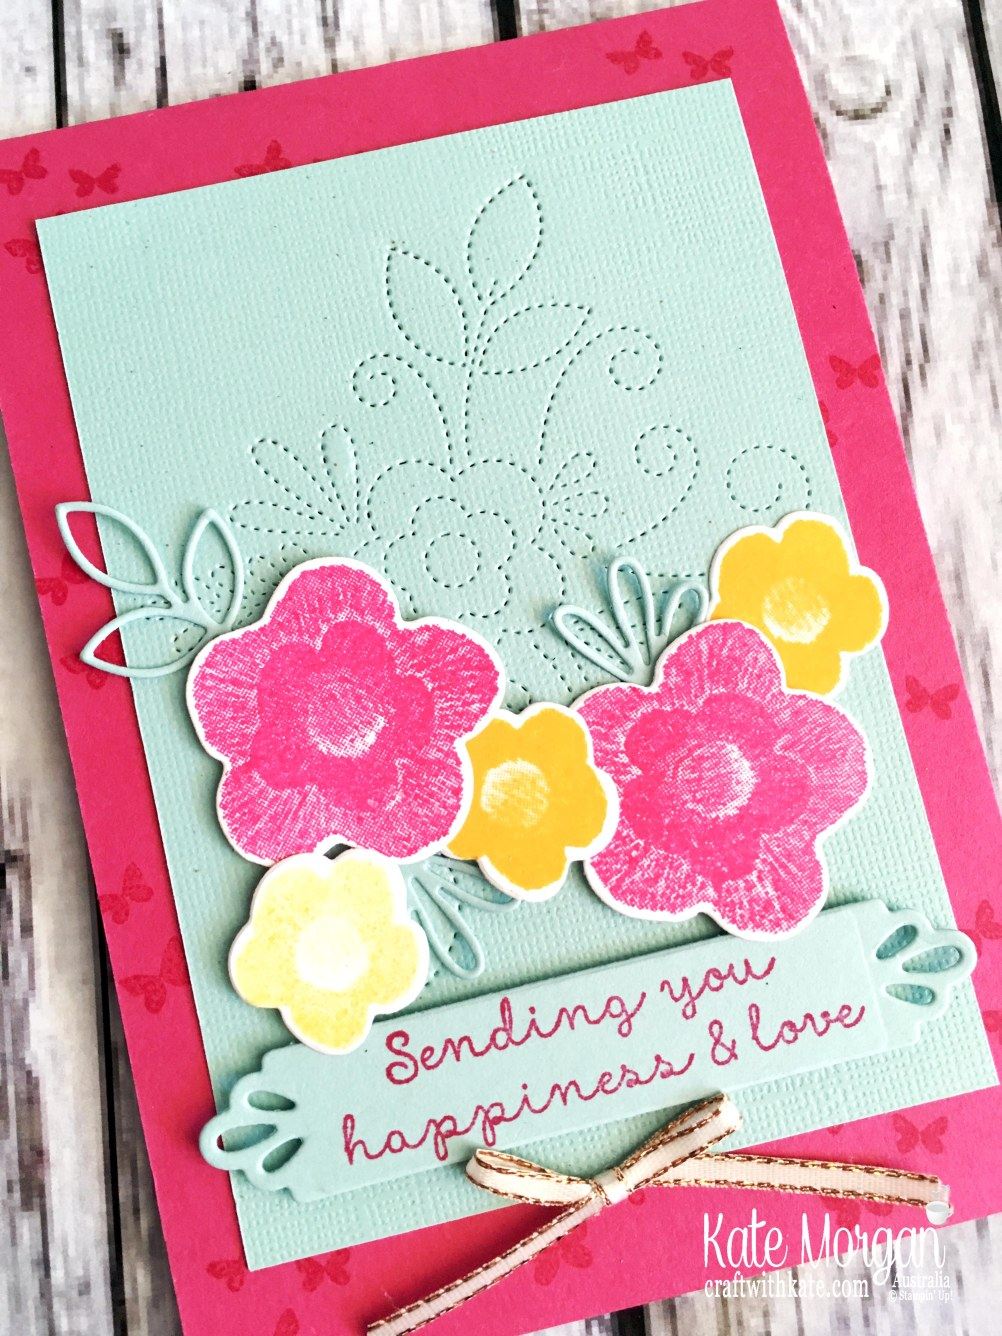 Needlepoint Nook Stampin Up 2019 for Colour Creations Melon Mambo blog hop by Kate Morgan, Australia.JPG